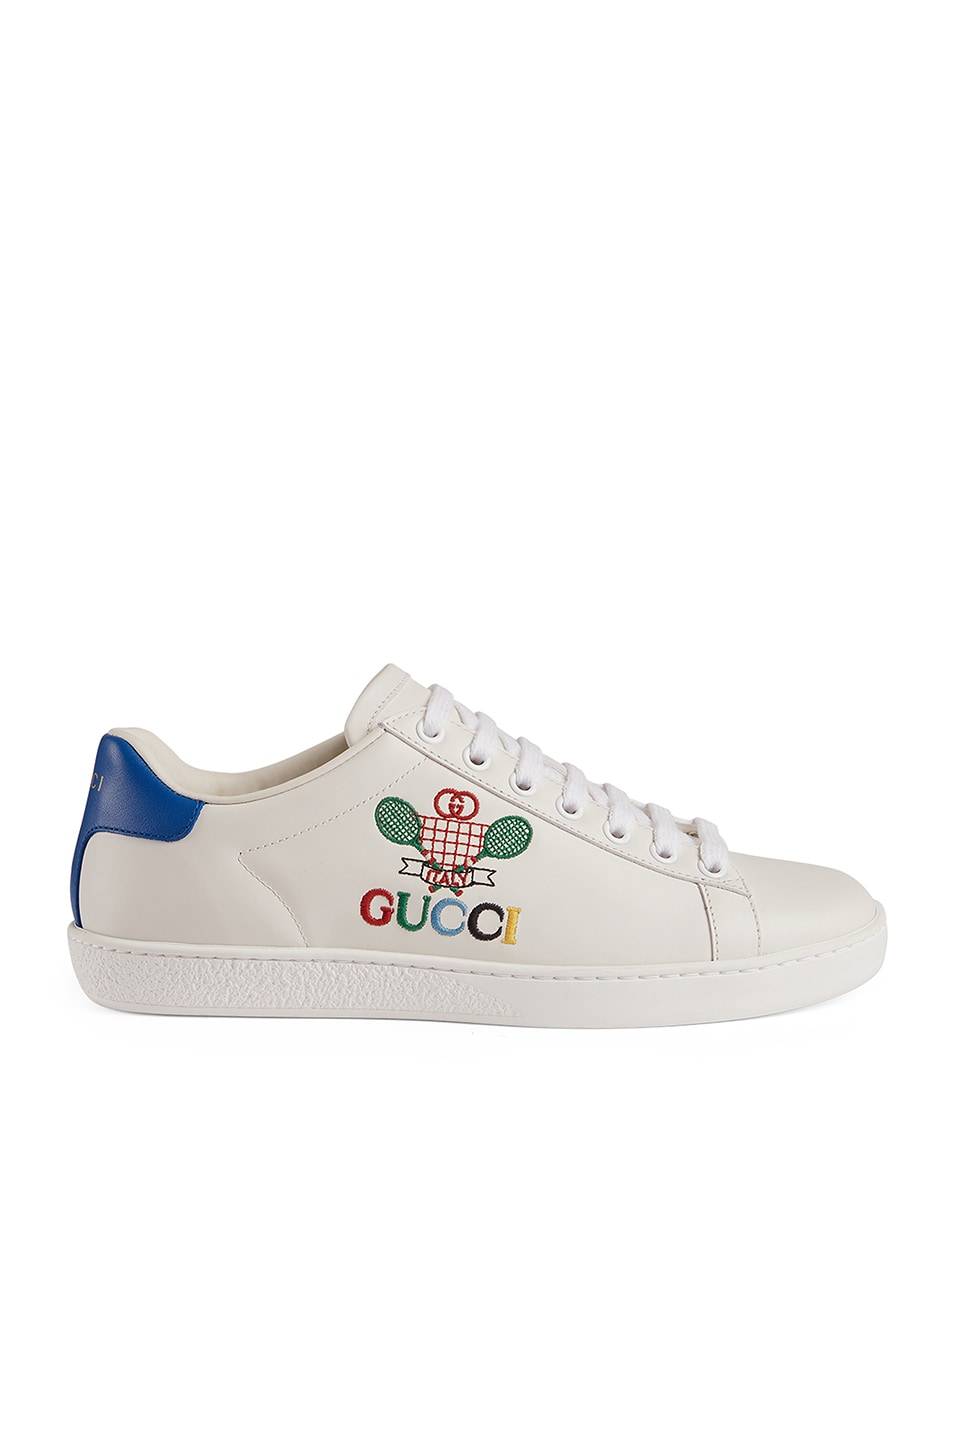 Image 1 of Gucci New Ace Tennis Sneakers in White